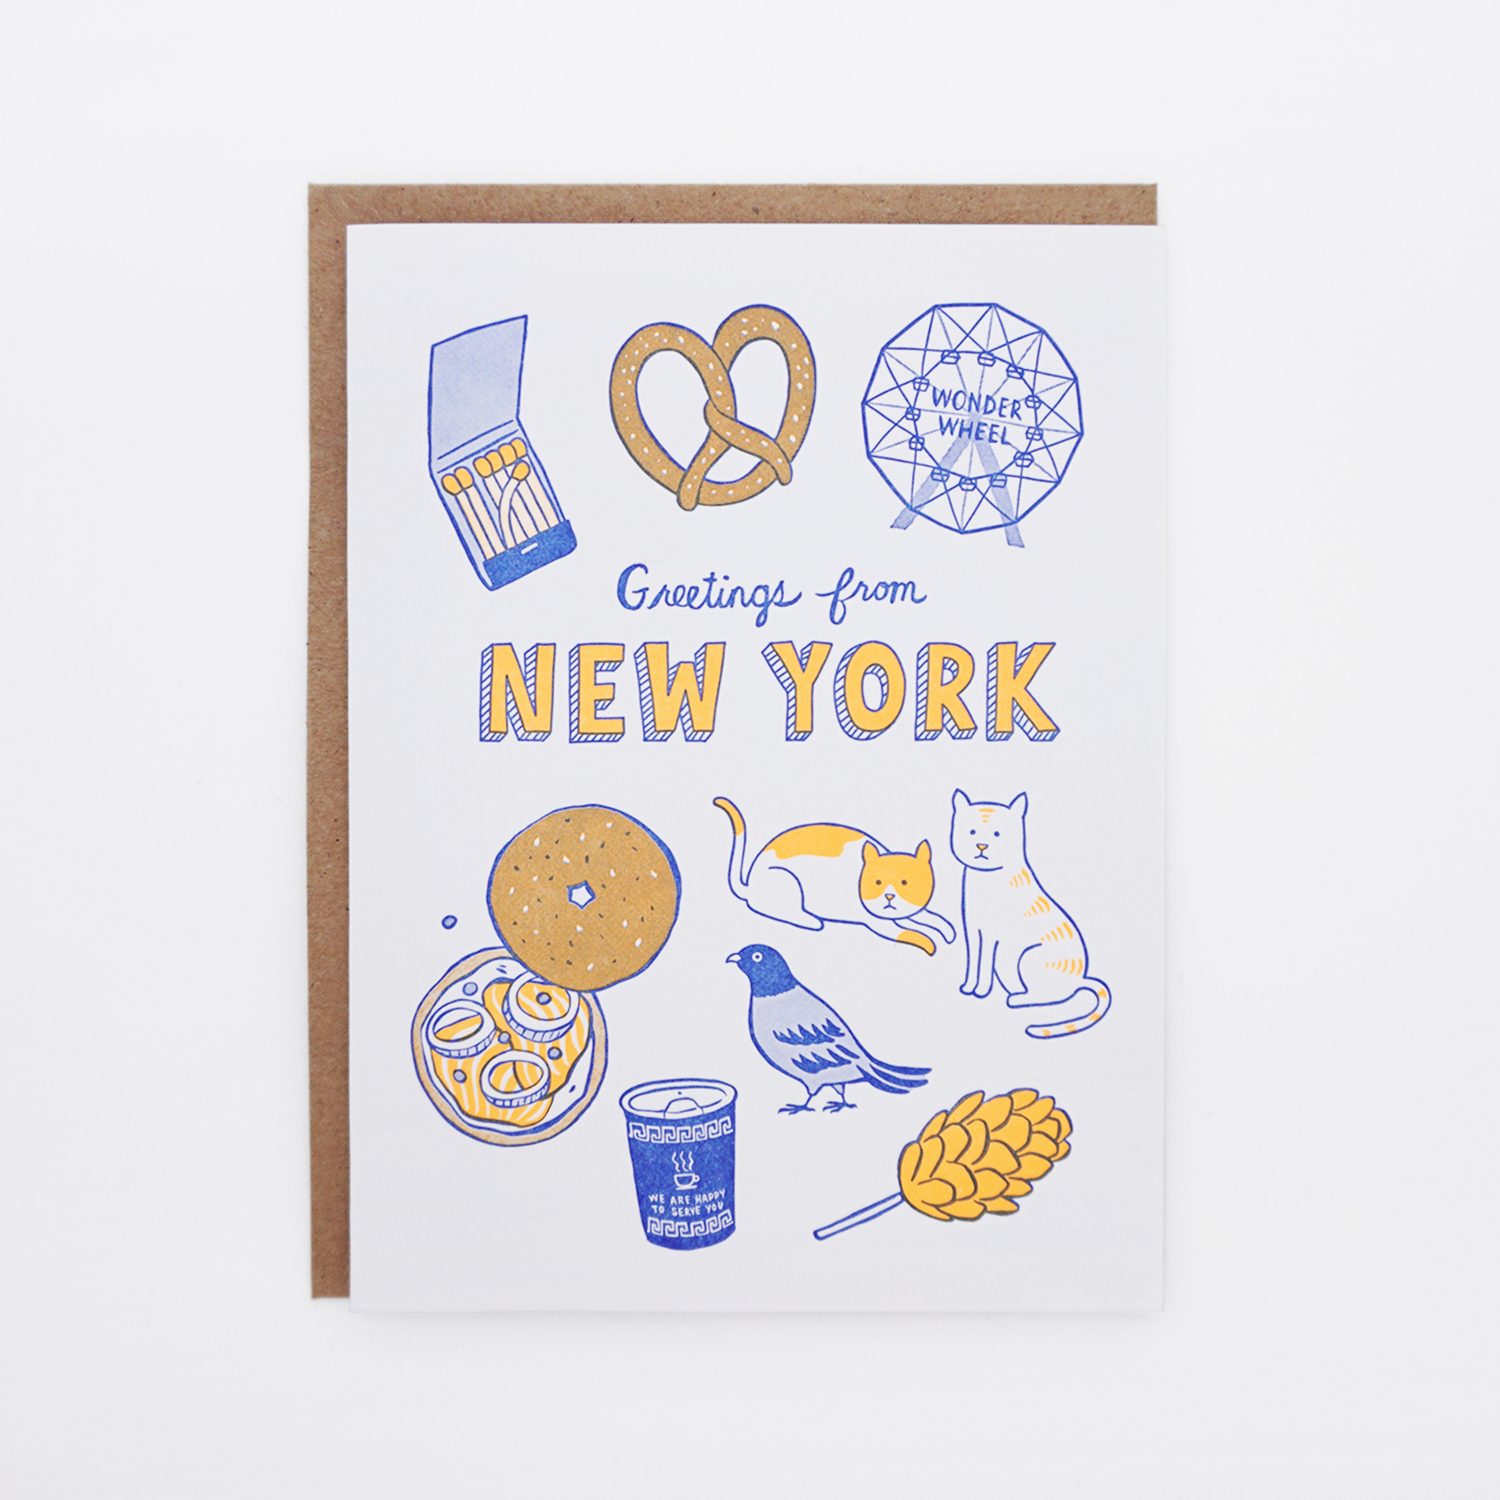 C200 Greetings From New York Lucky Horse Press